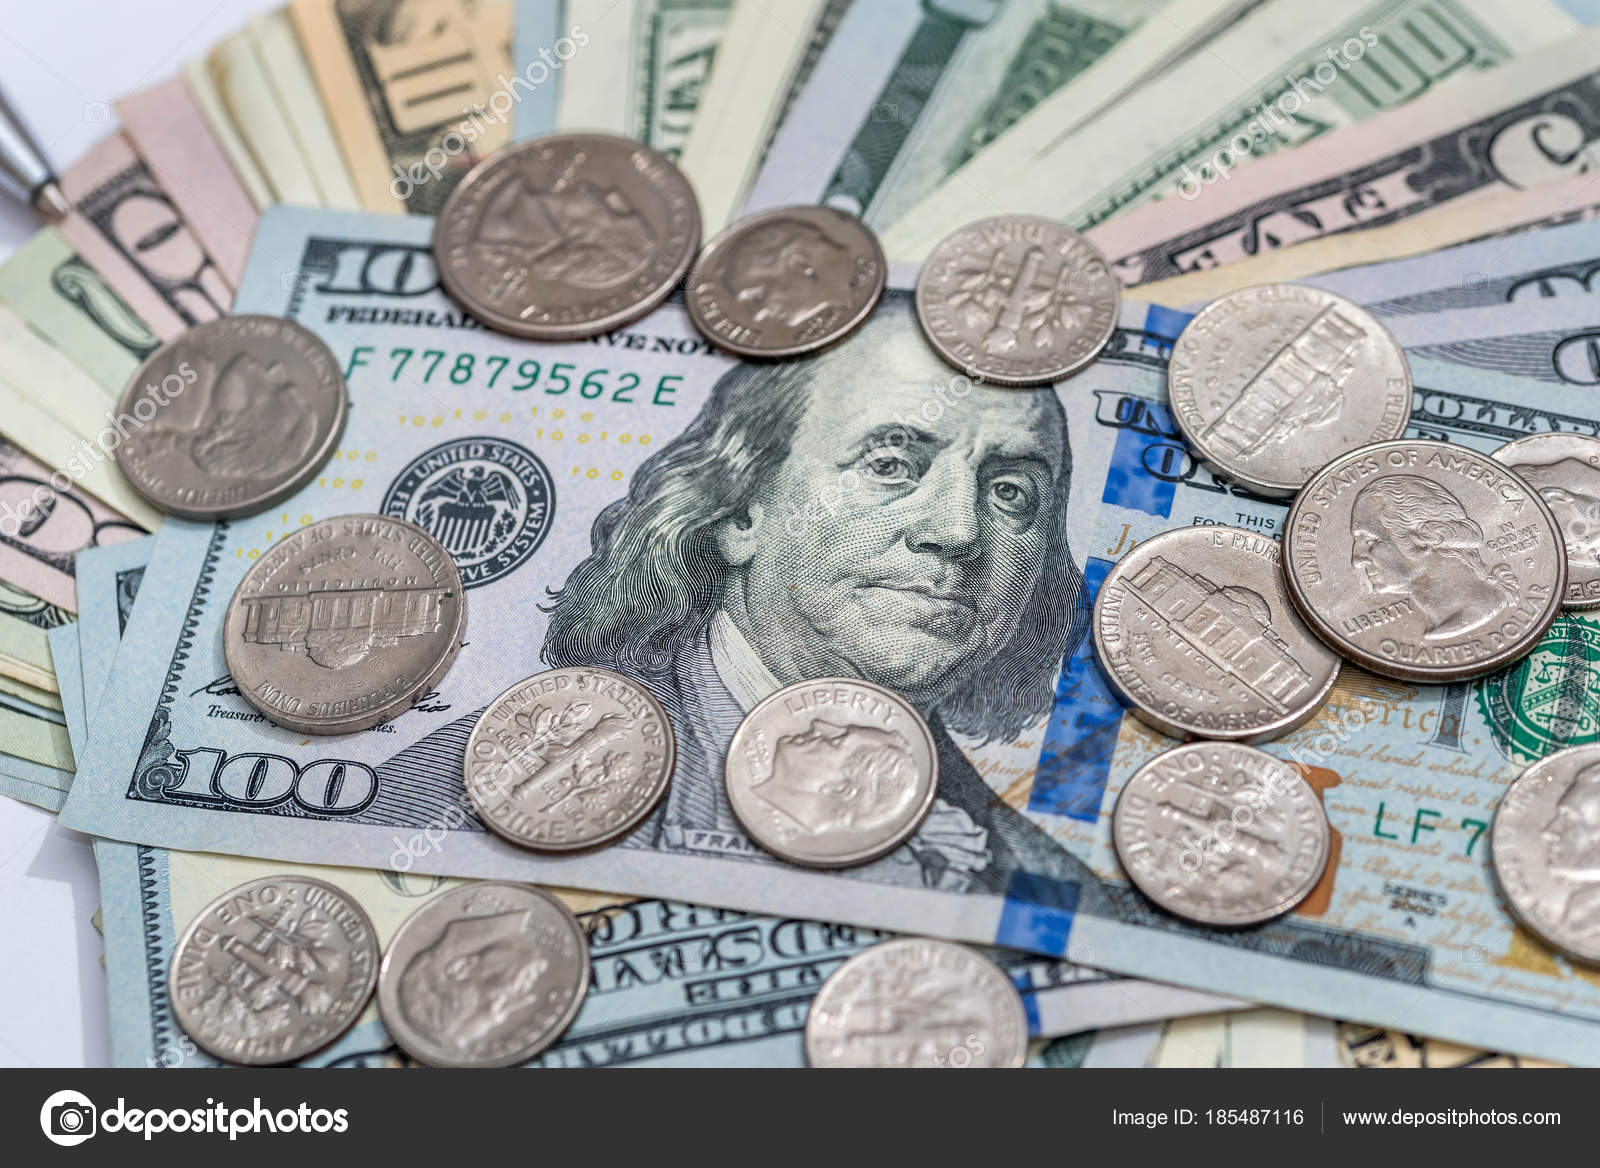 images of coins and bills